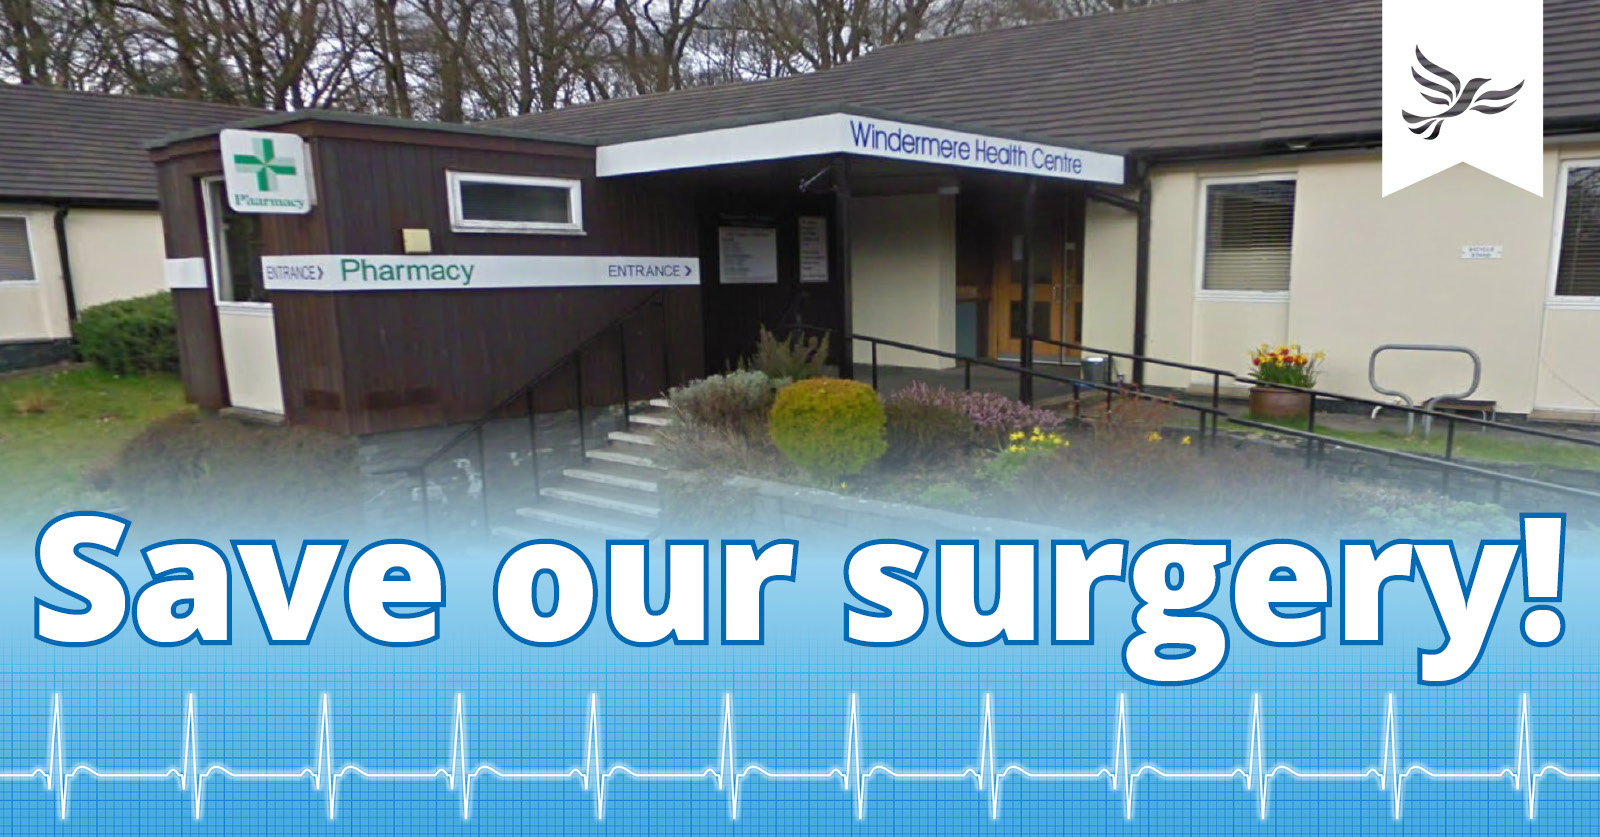 Goodly Dale Surgery Under Threat: SAVE OUR GP SERVICES!